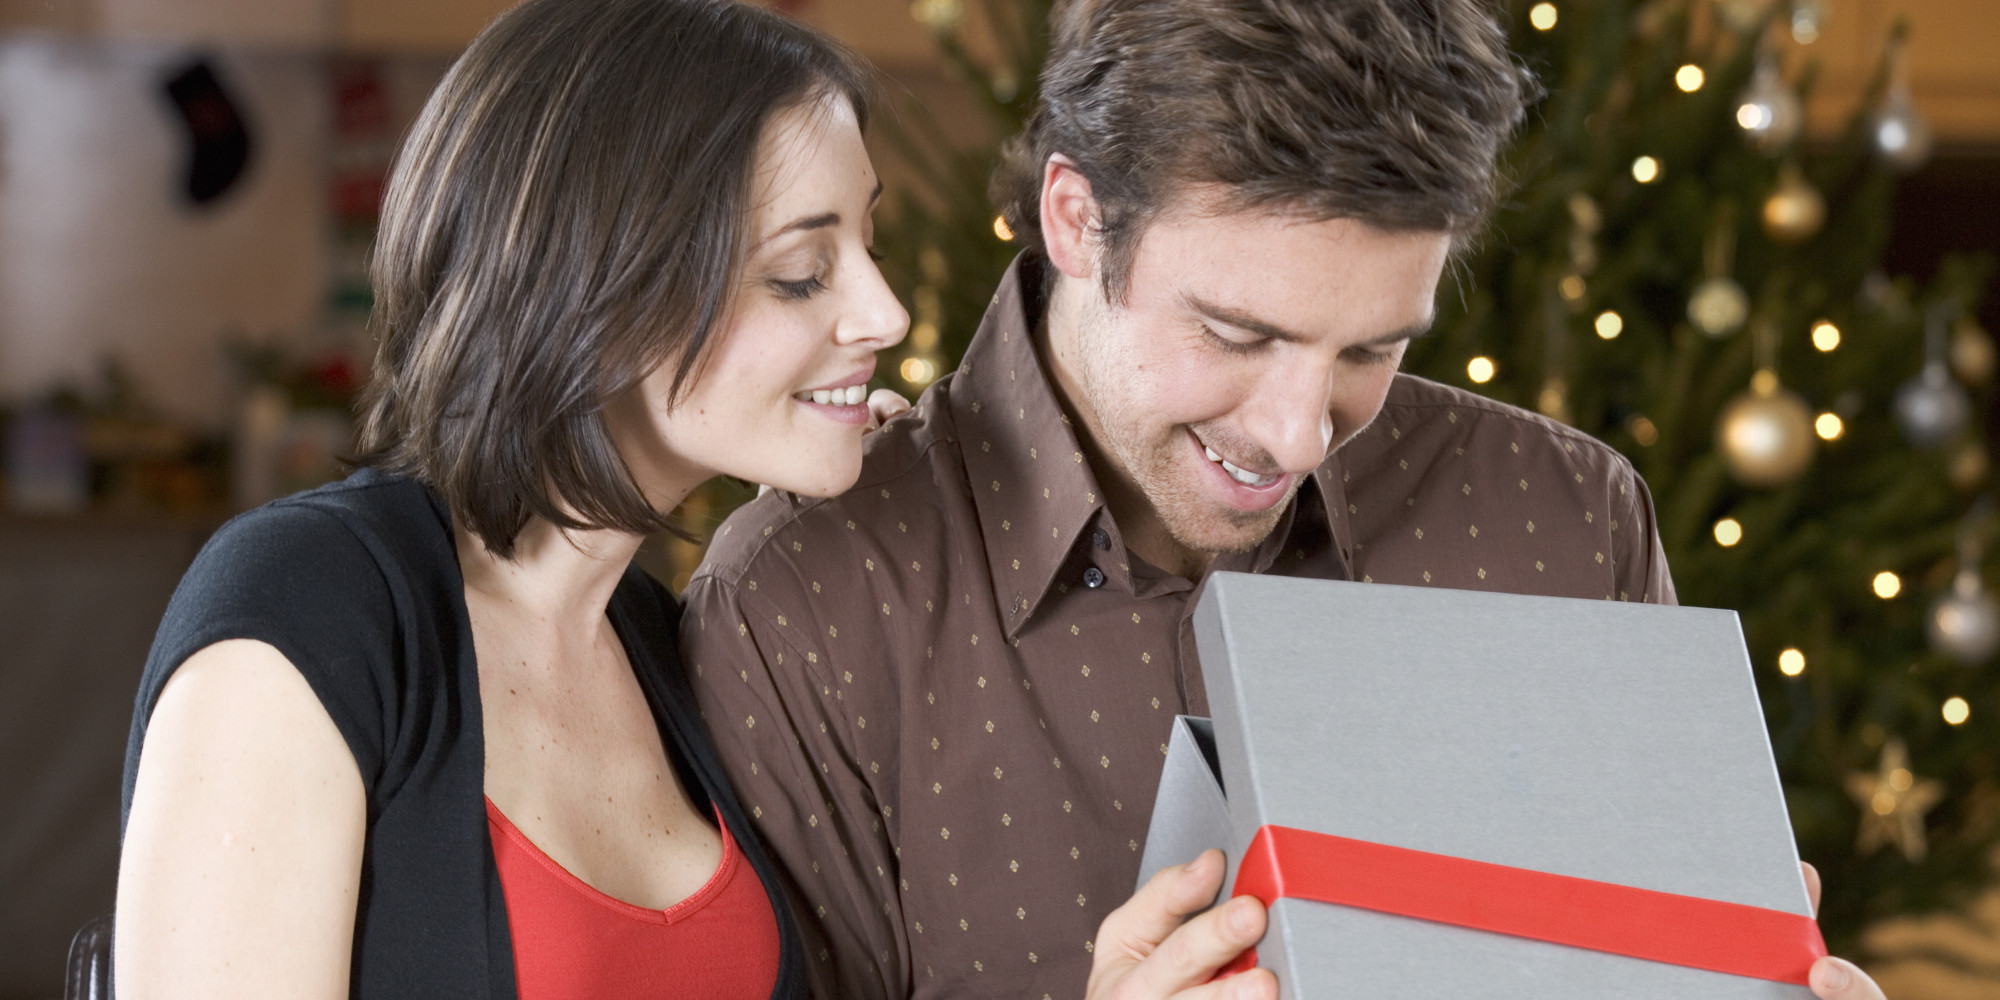 The 100 Best Christmas Gifts Ideas for Men: Dads, Hubbies, BFs, Bros & Beyond